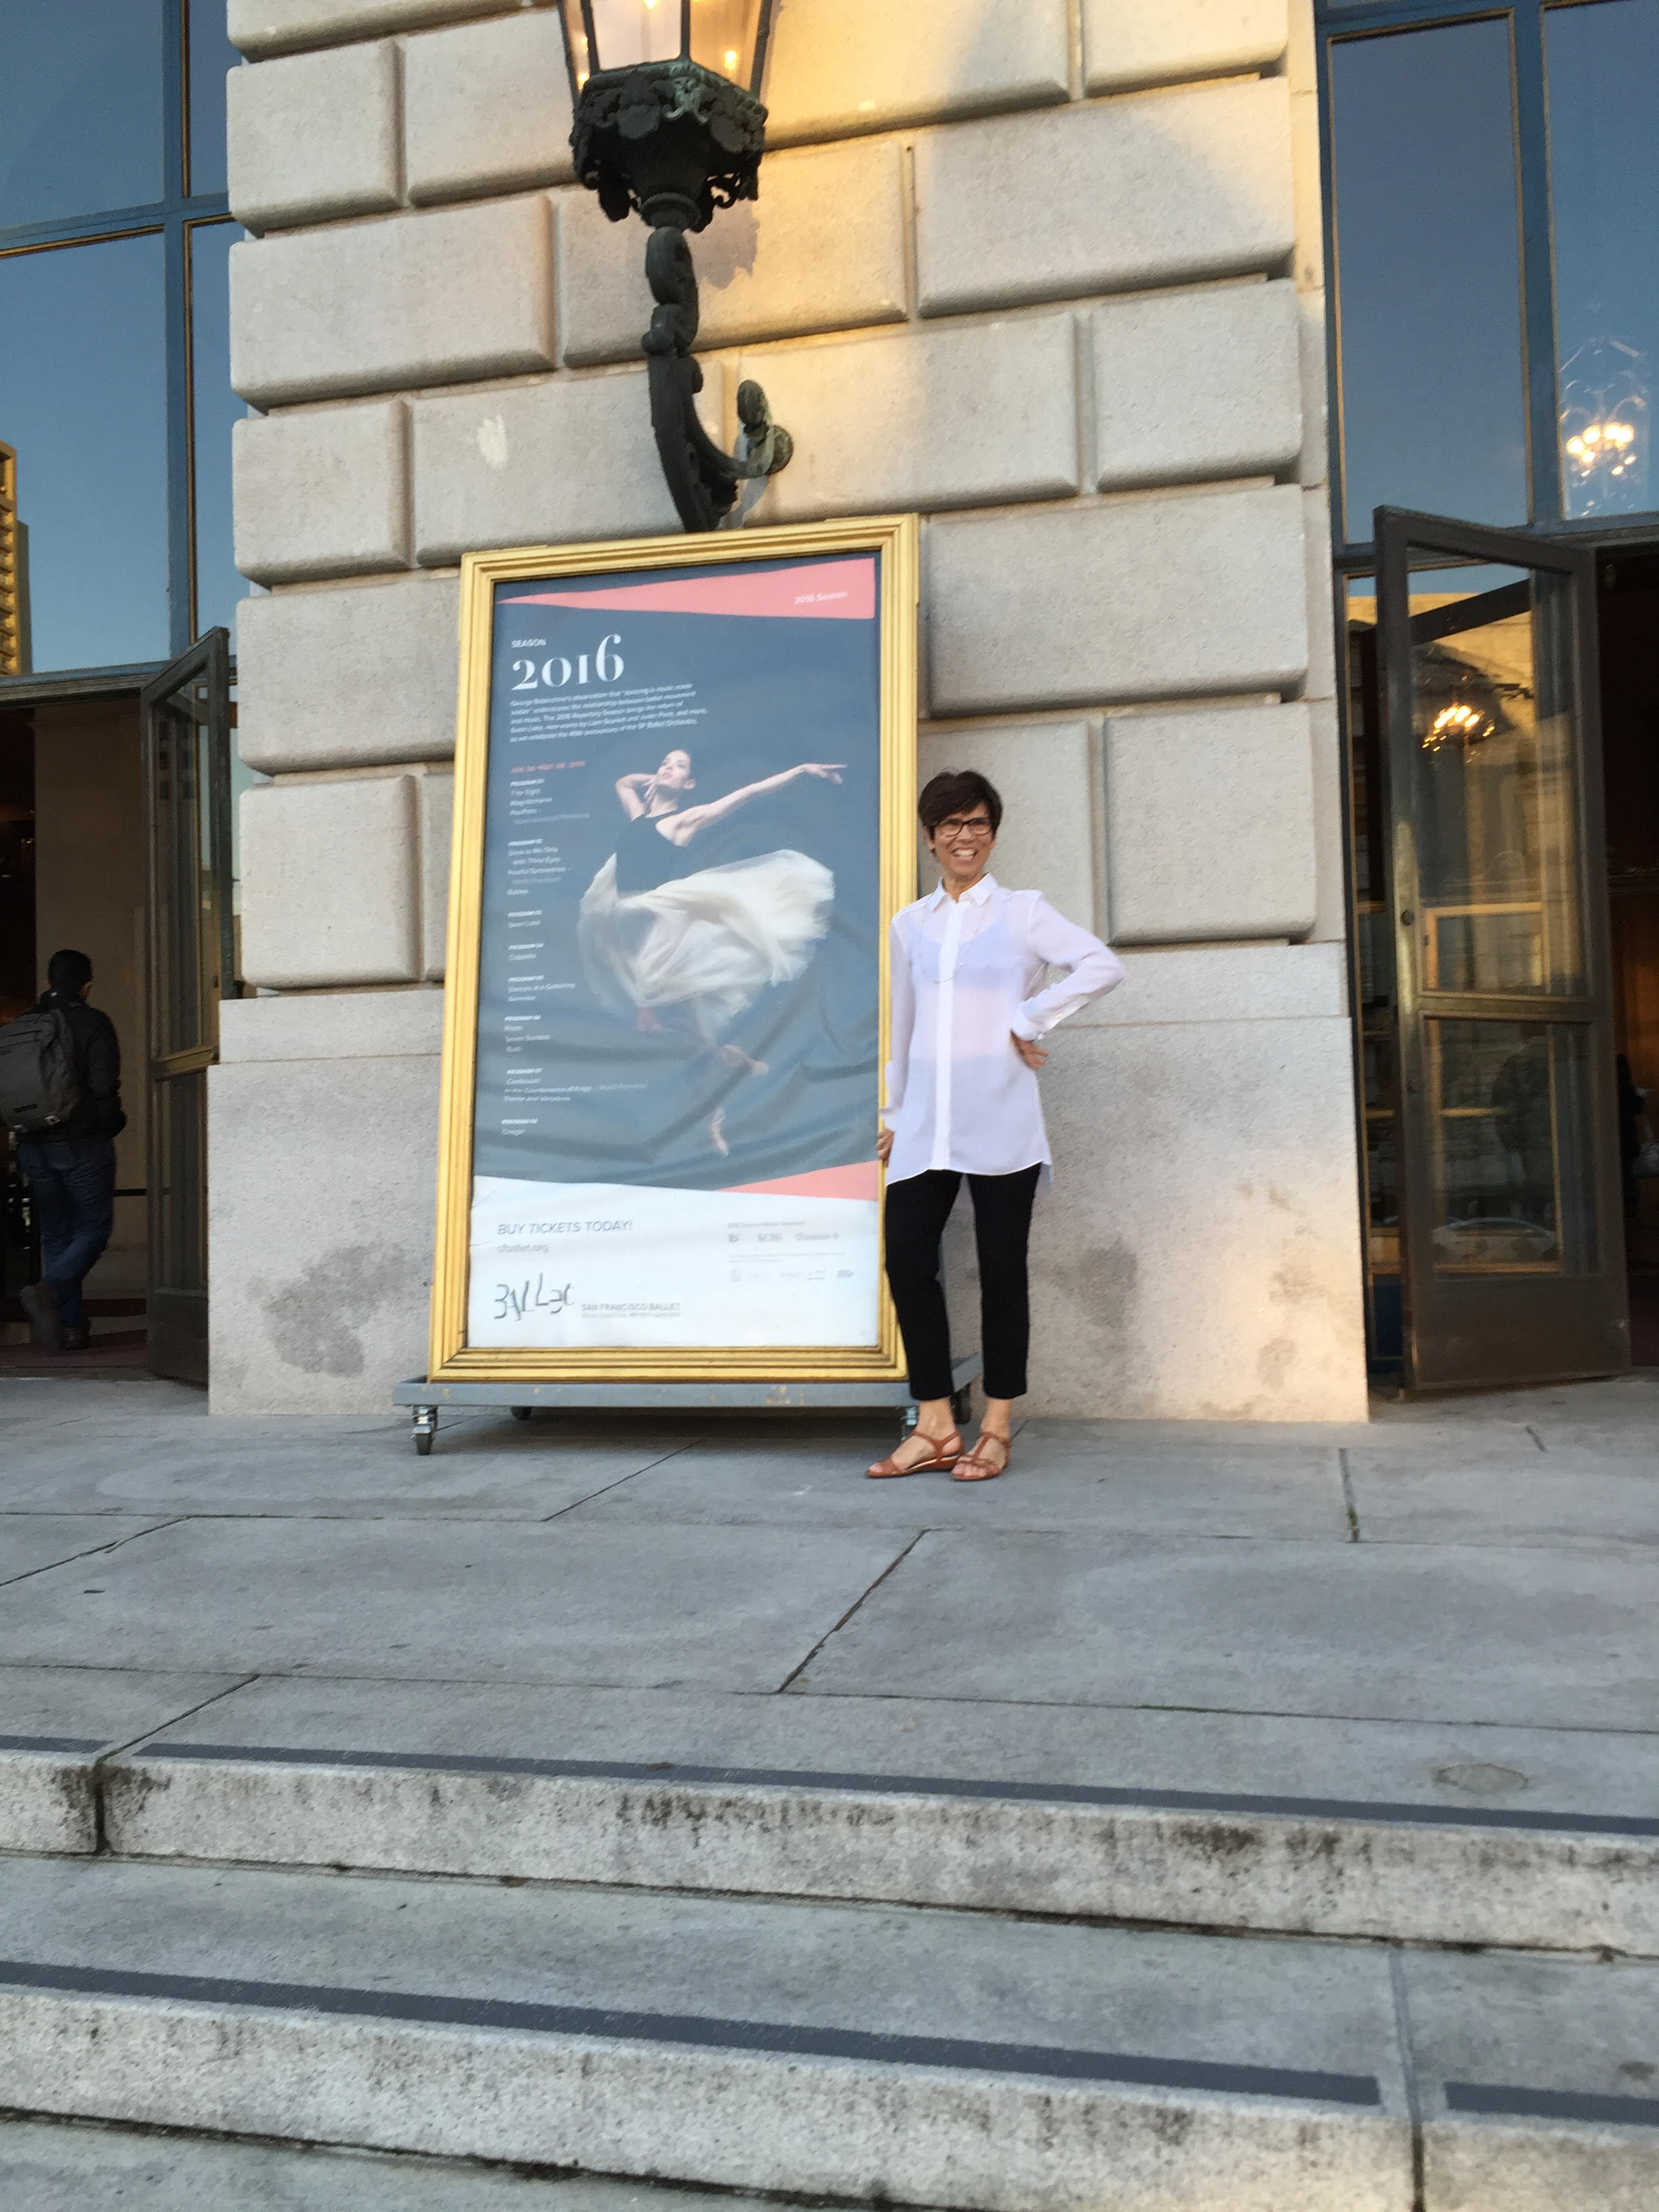 Kathy Adams visiting San Francisco to see the work of Justin Peck